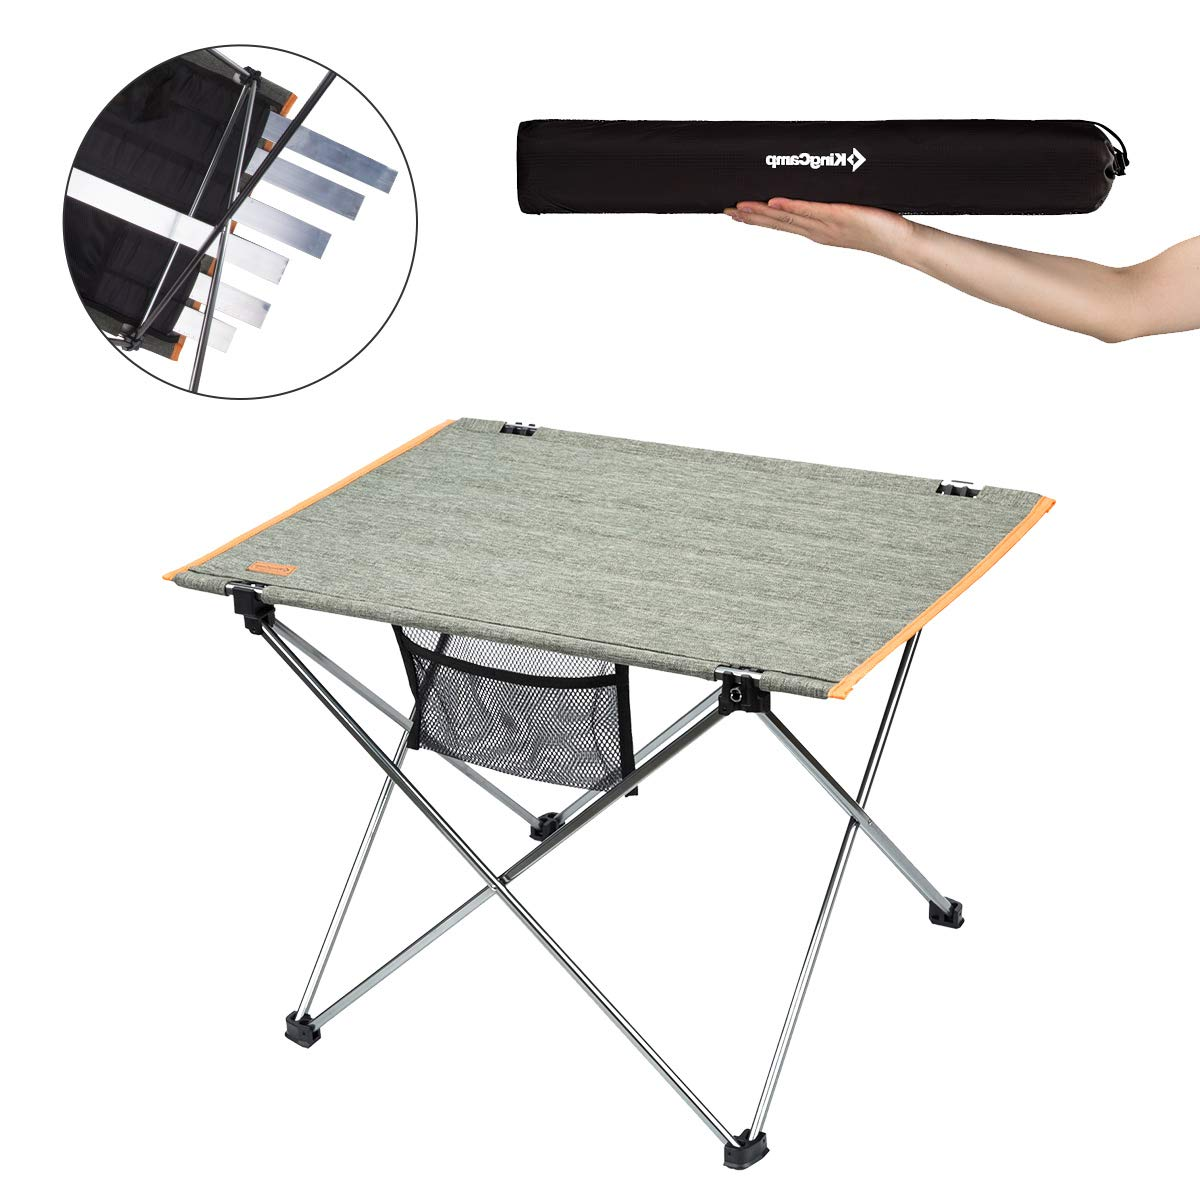 KingCamp Ultralight Compact Folding Camping Aluminum Table with Carry Bag